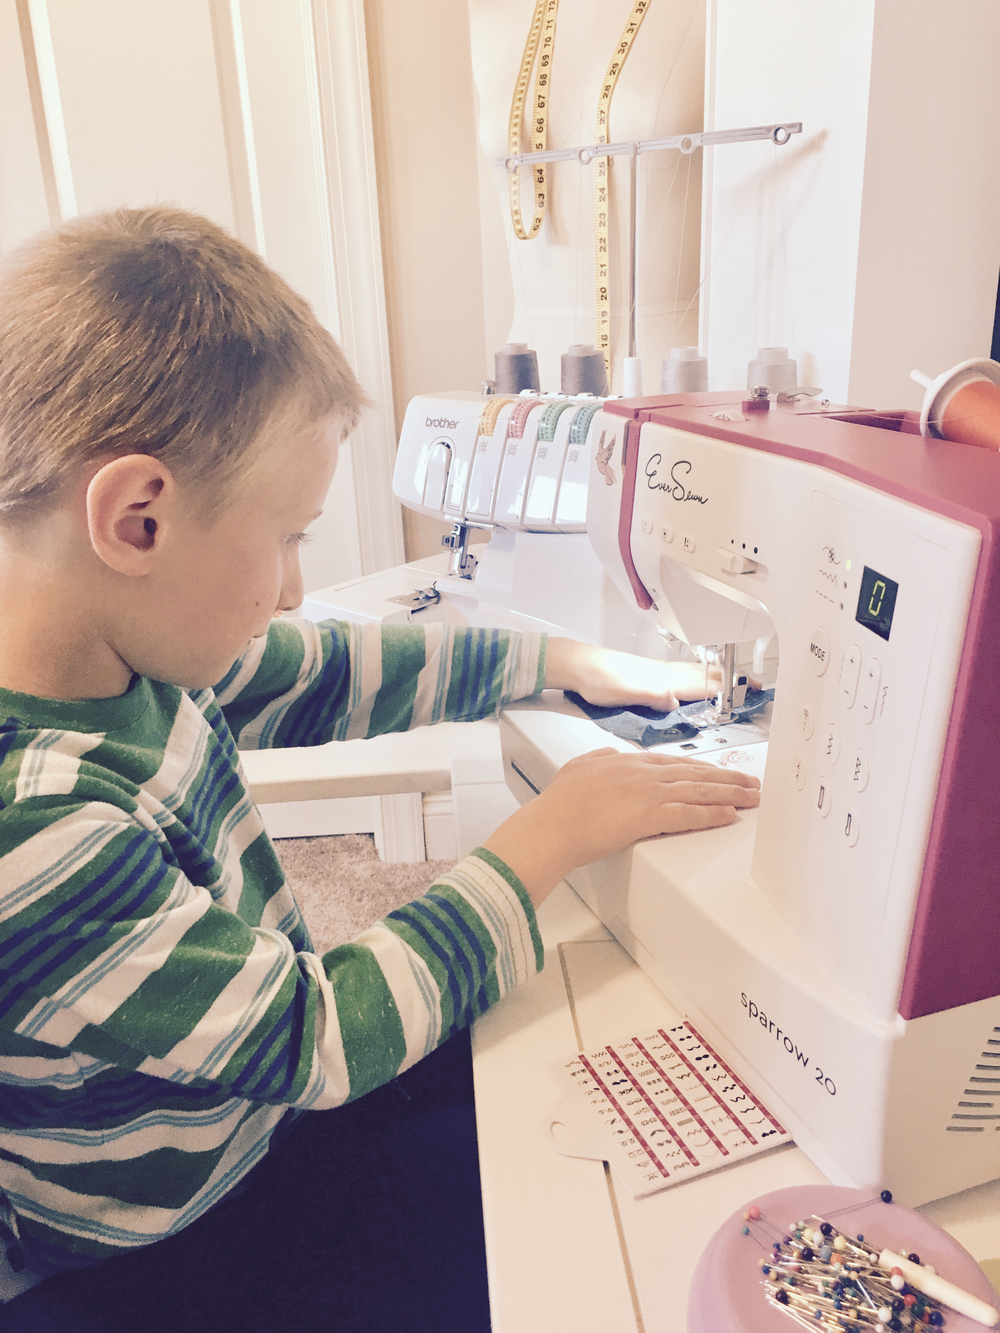 Our machines have been designed for beginners both adults and children, giving students the confidence to explore new skills at their own pace. -